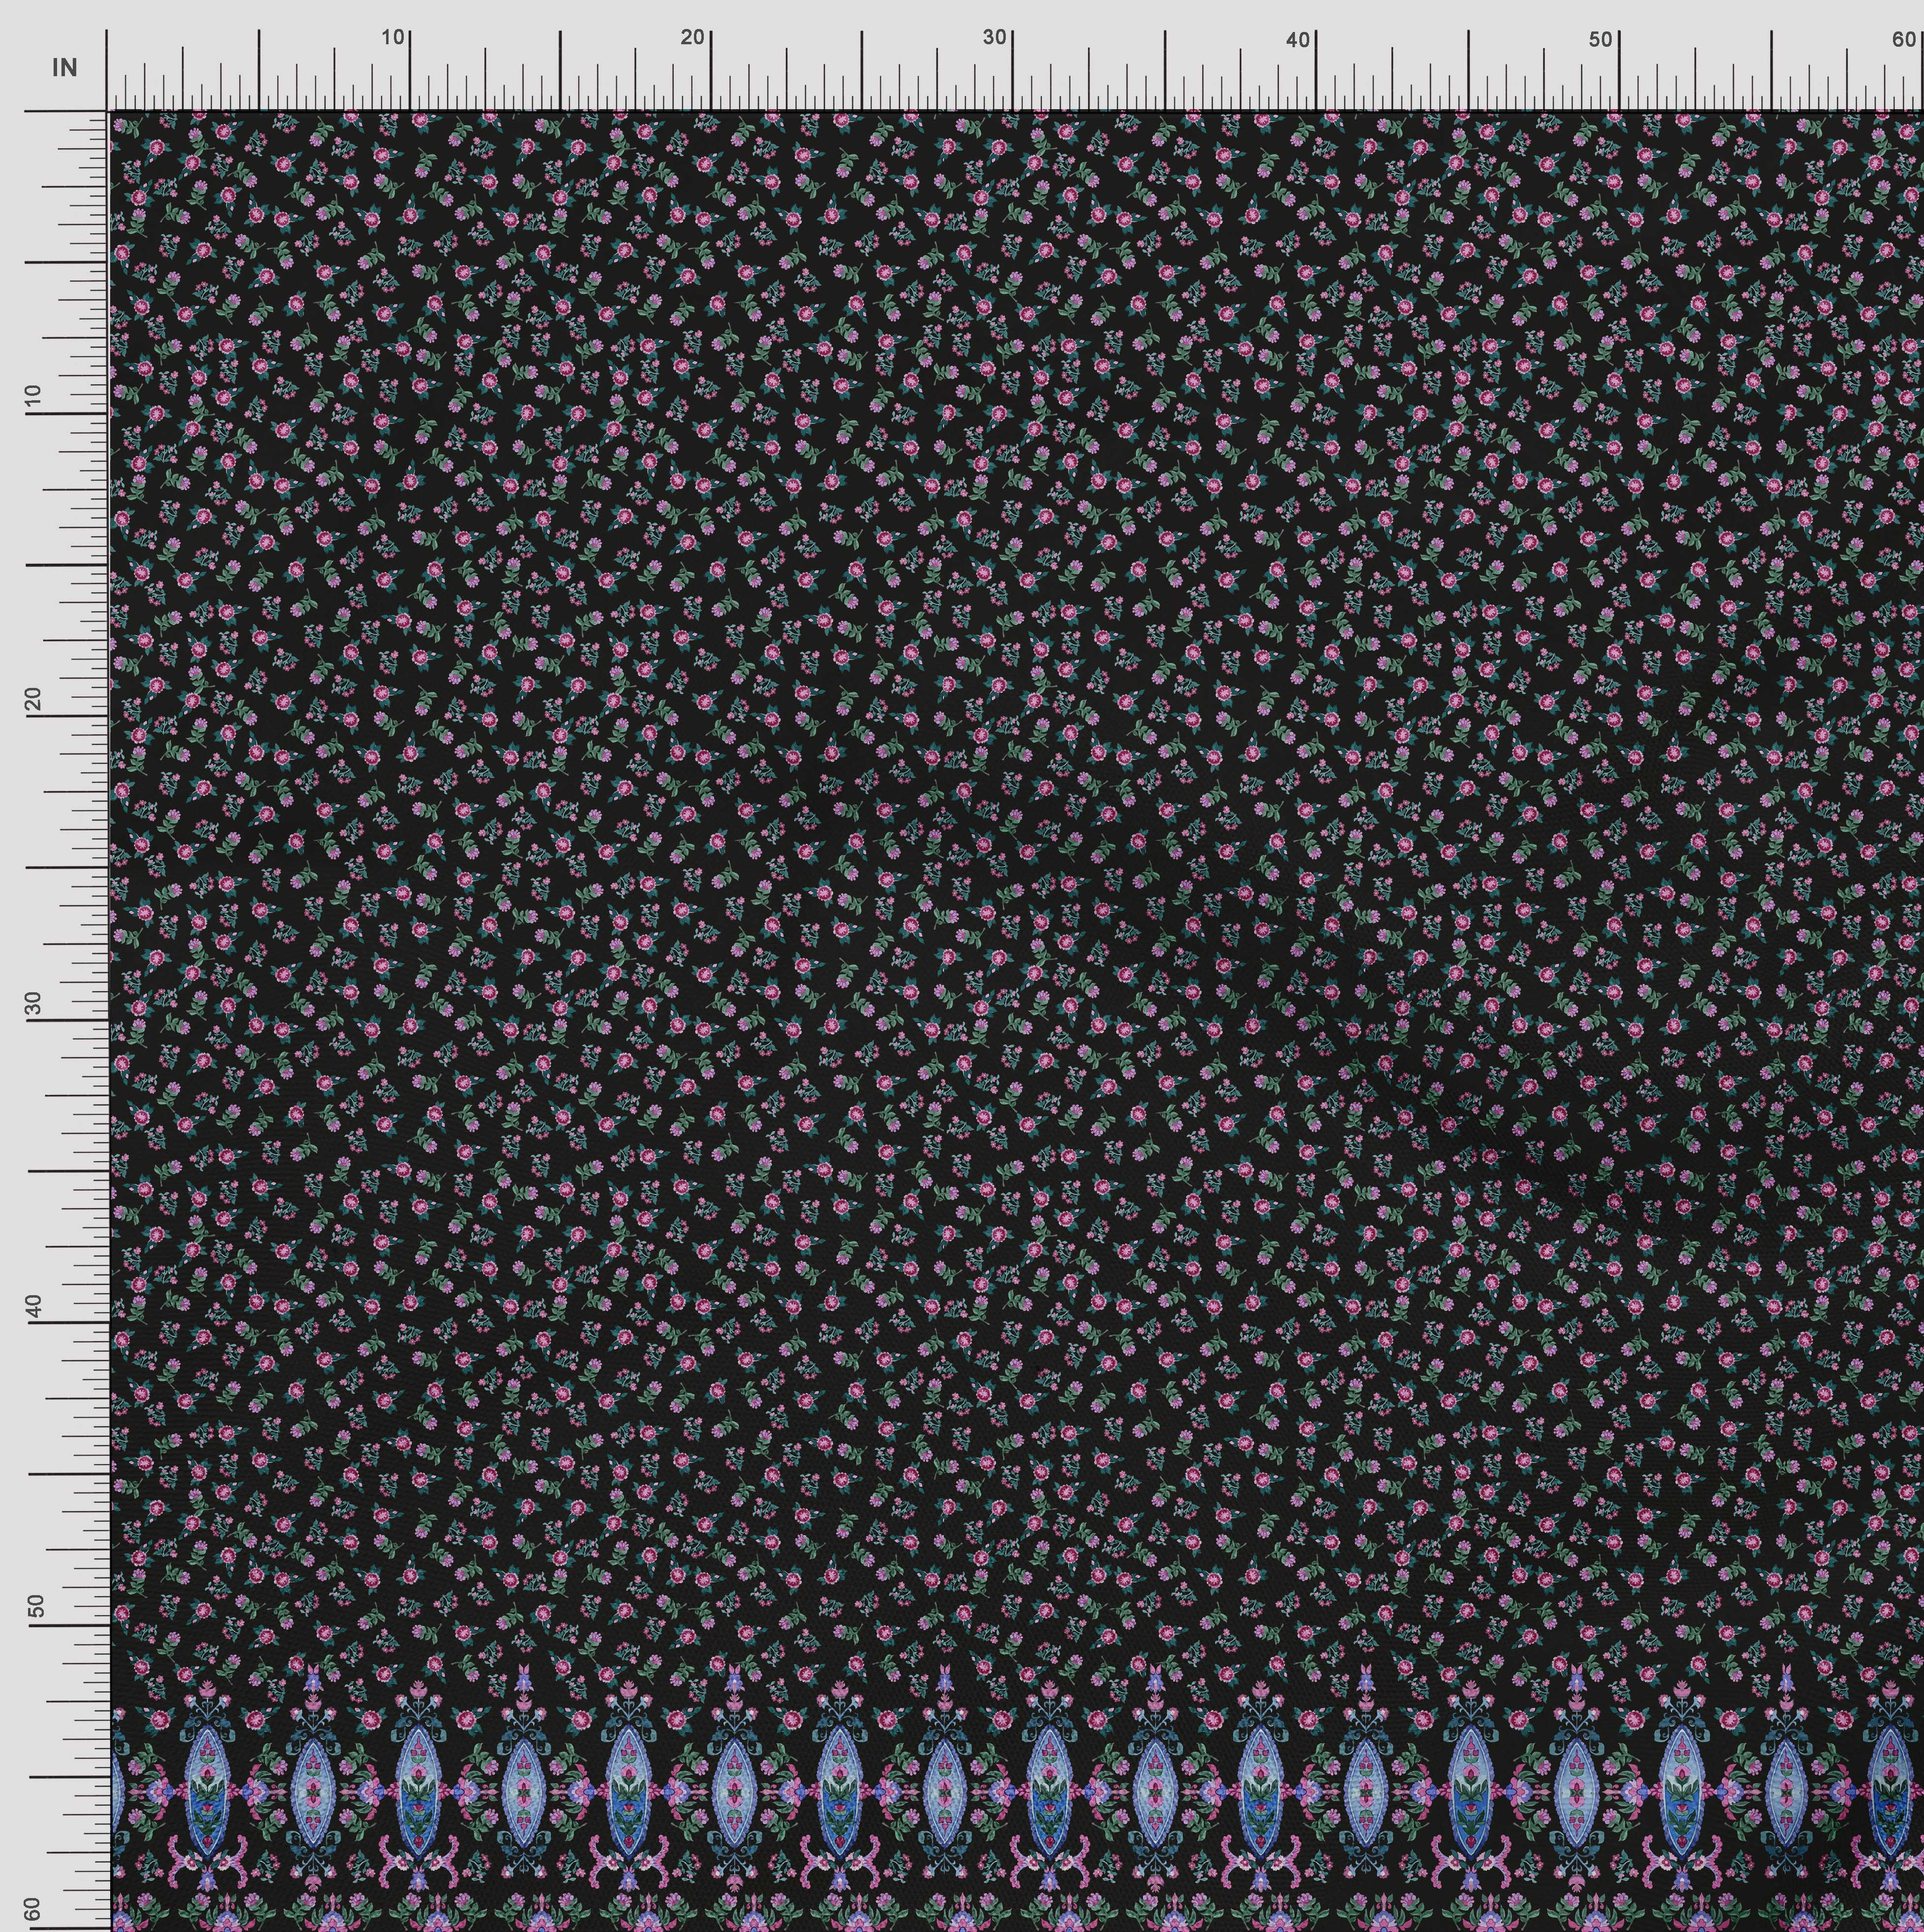 Soimoi-Cotton-Poplin-Fabric-Floral-amp-Leaves-Panel-Print-Fabric-by-IMg thumbnail 4